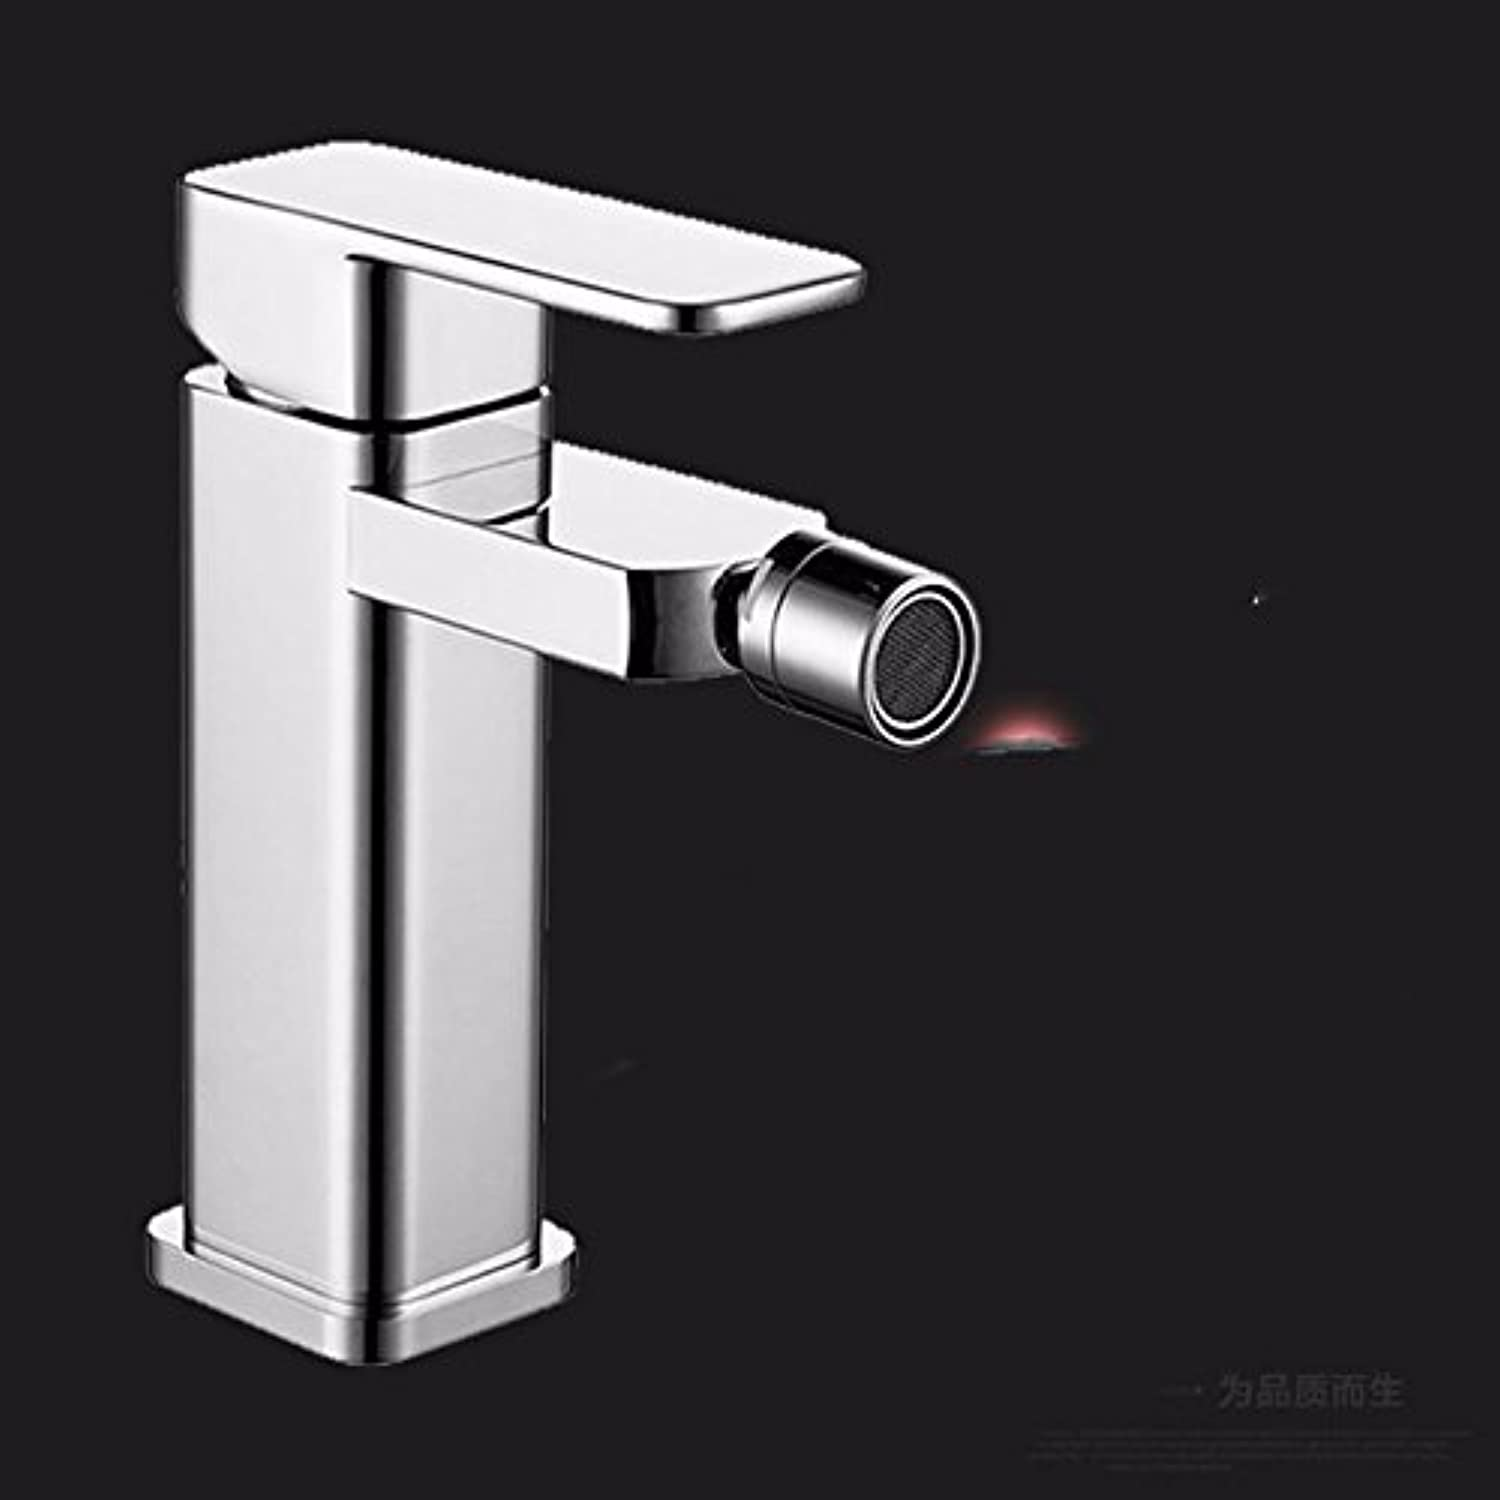 Hlluya Professional Sink Mixer Tap Kitchen Faucet Mix the water bath woman wash, turn the tap water faucet, toilet